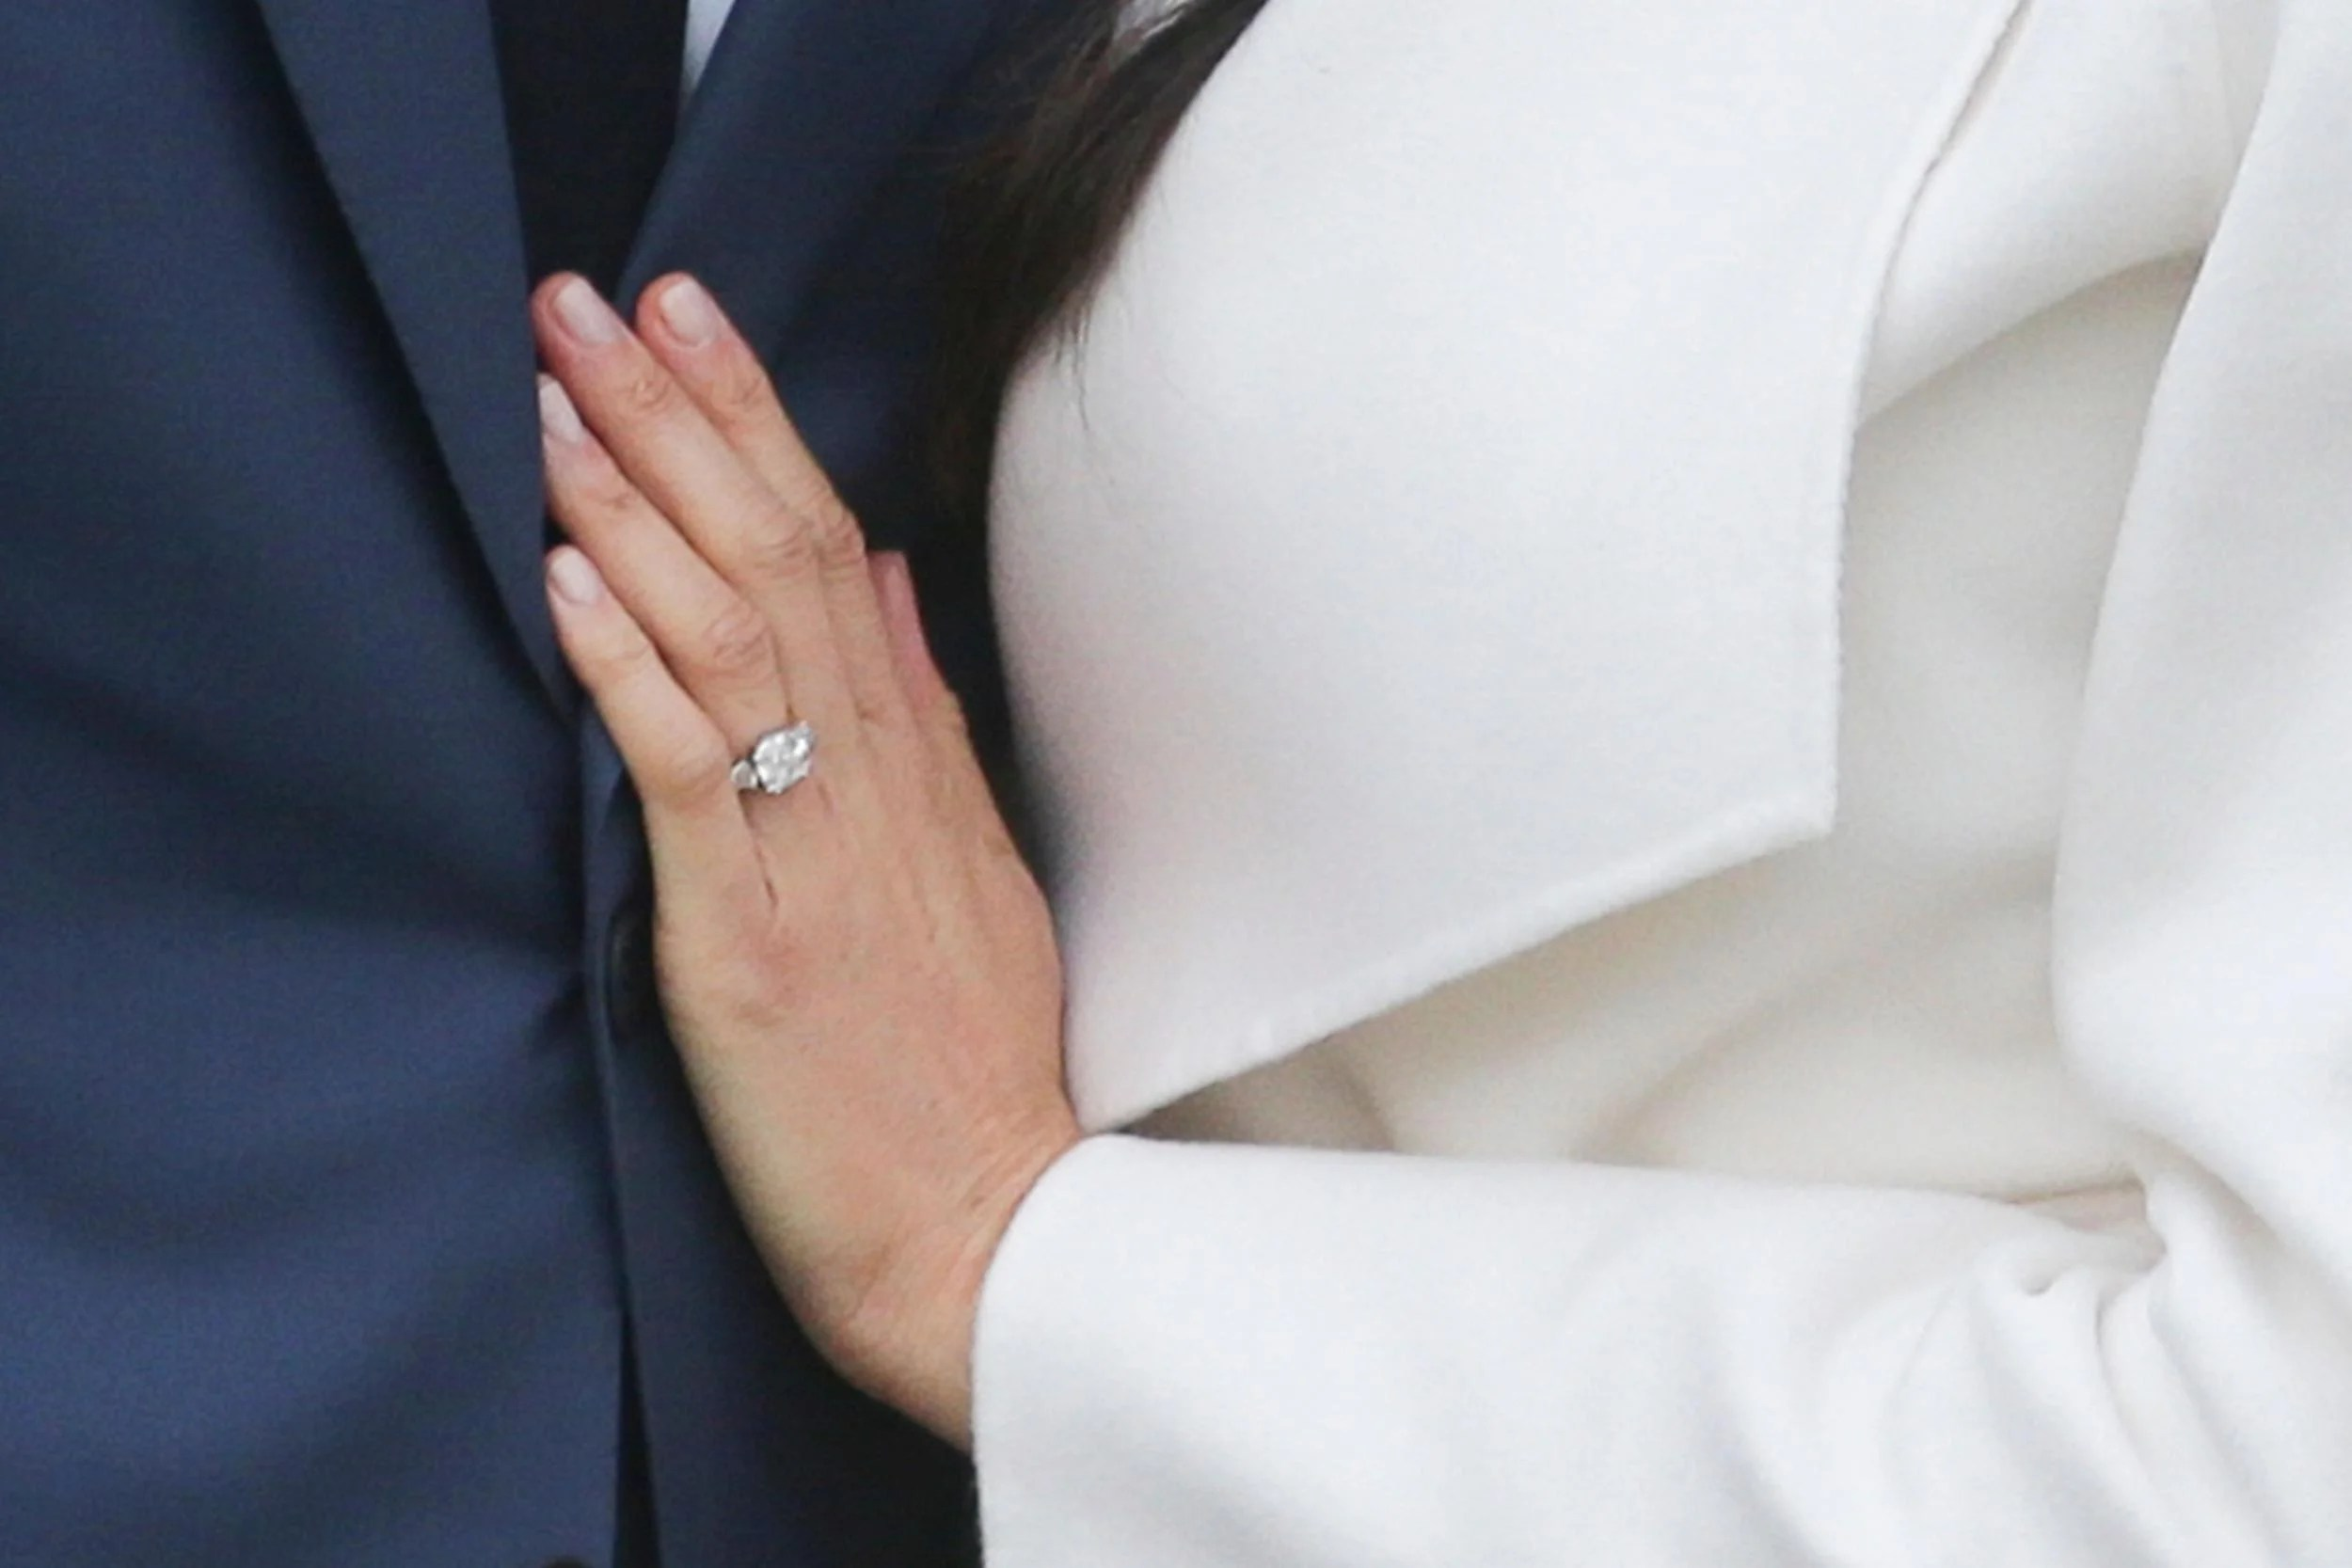 Compelling Meghan Markle Engagement Announcement You Can Now Buy Meghan Engagement Ring London Meghan Markle Engagement Ring Carat Meghan Markle Engagement Ring Worth Prince Harry wedding rings Meghan Markle Engagement Ring